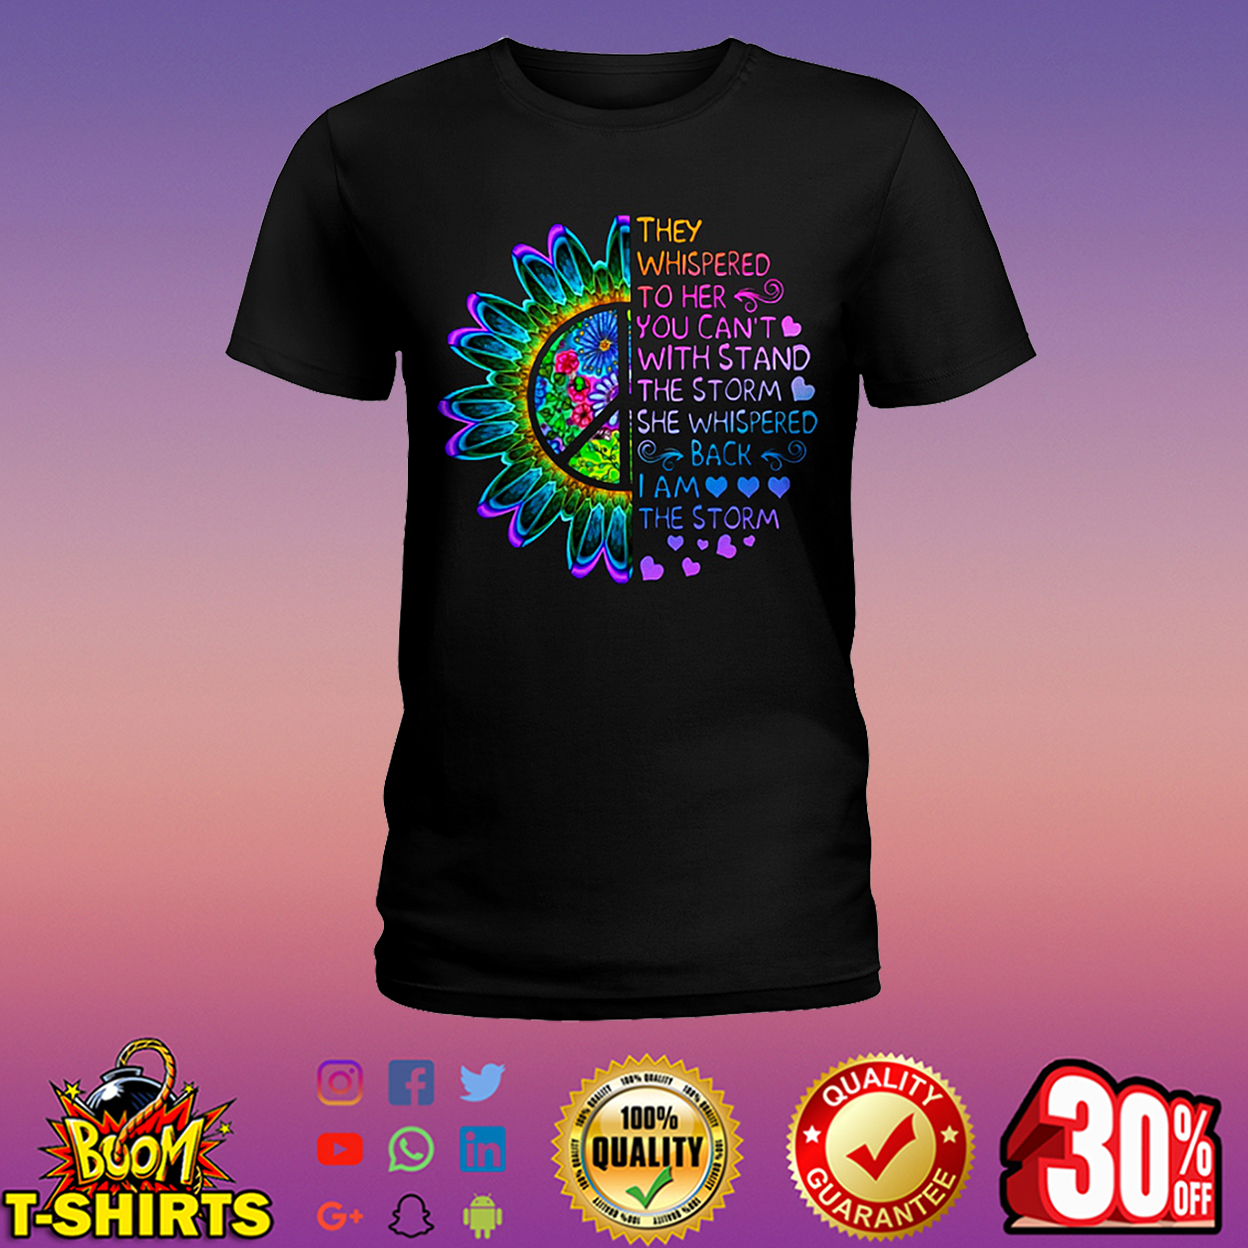 They whispered to her you can't with stand the storm shirt